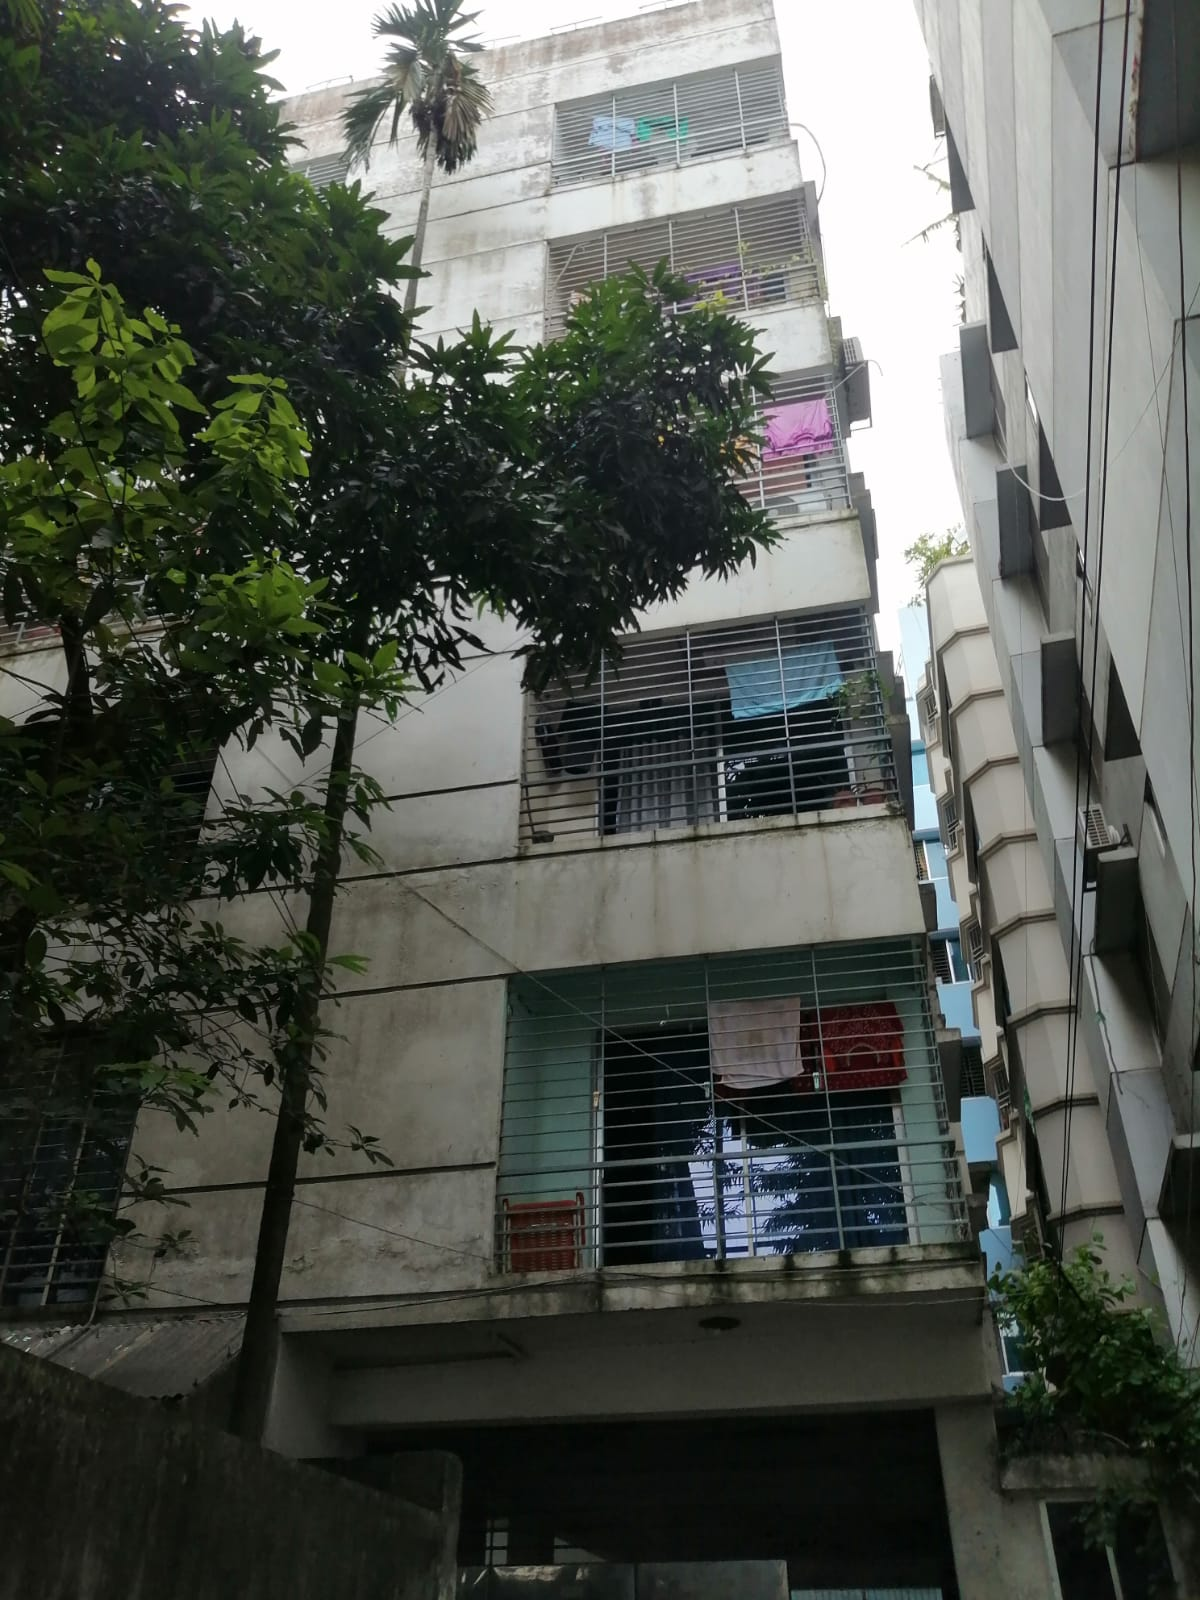 1530-sft-apartment-for-sale-at-kathalbagan-1st-floor-769040